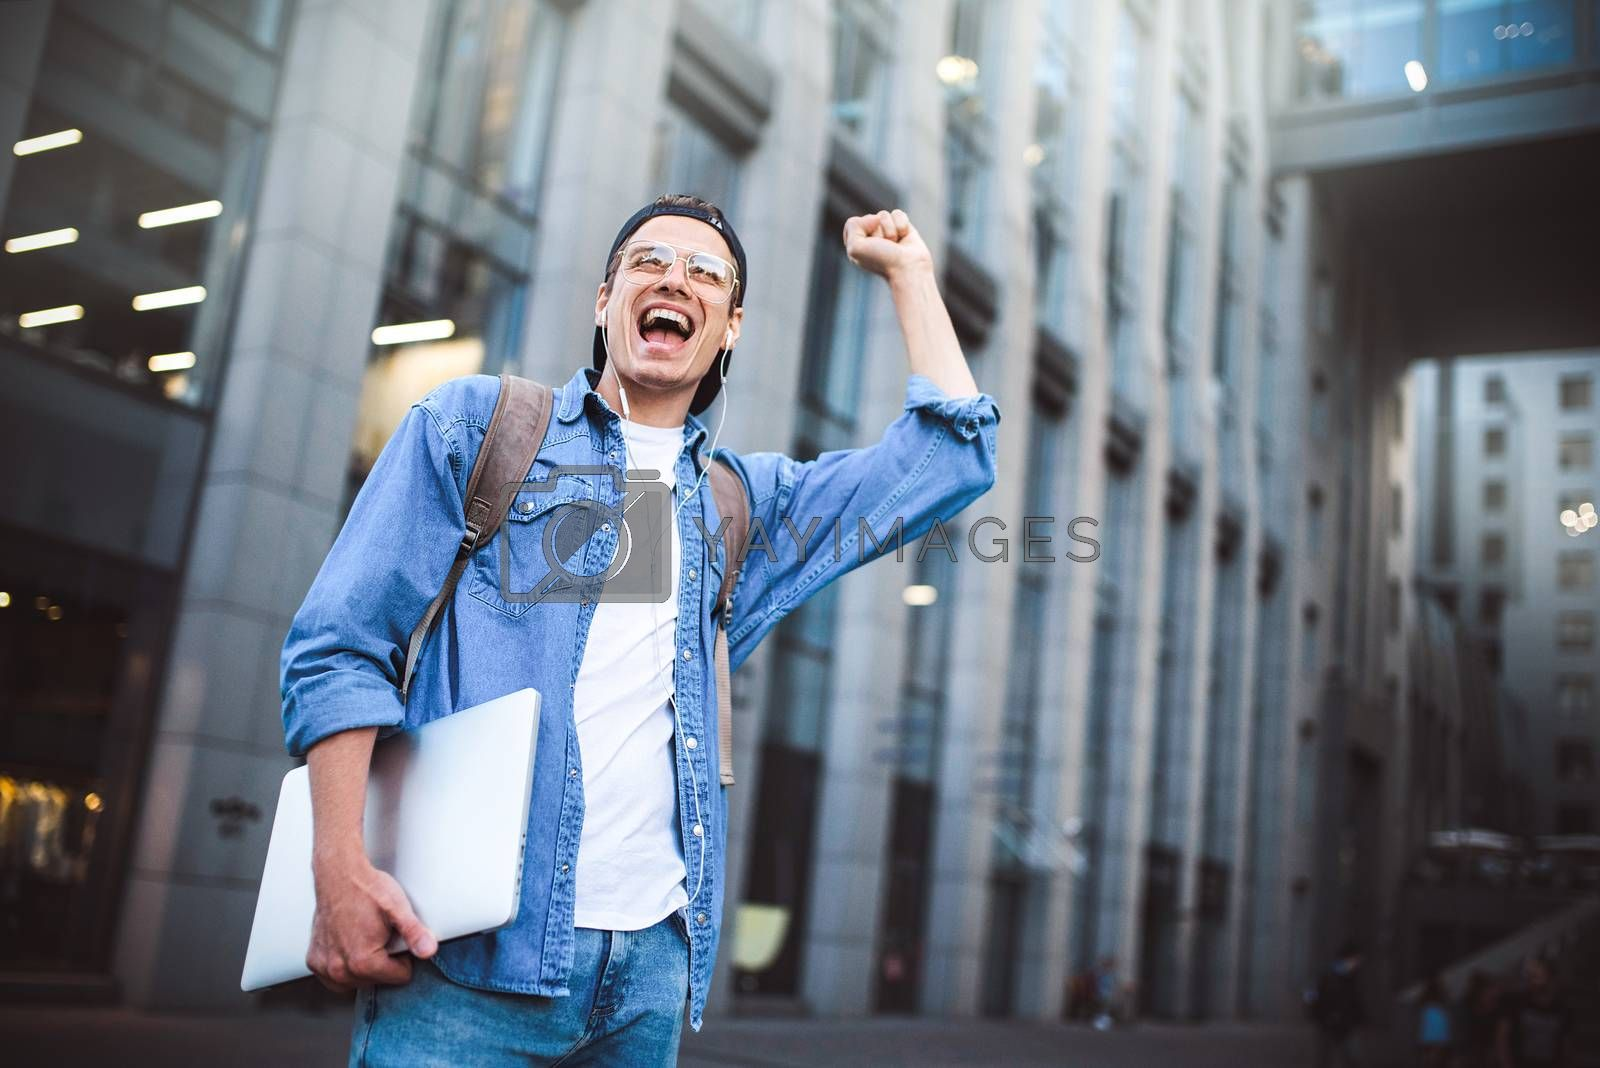 Royalty free image of Say hello. Happy man meeting someone. Happy man listening to music with headphones from a smartphone on the street. by Nickstock